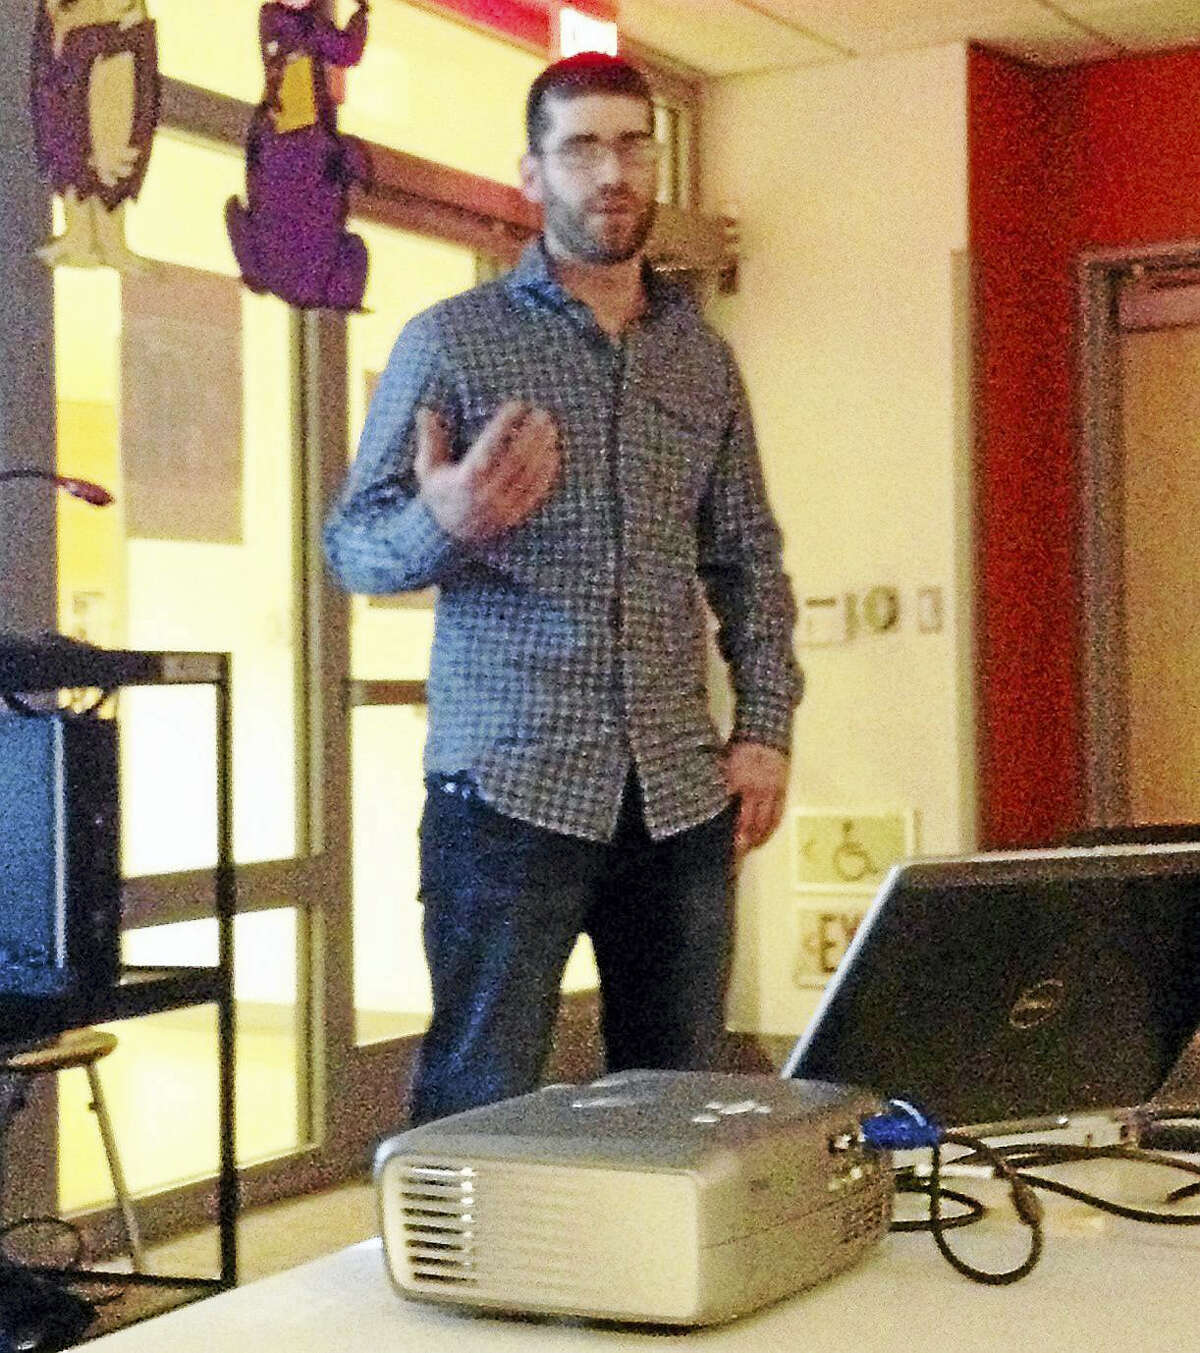 Tim Wilson spoke about his proposed craft beer brewery in New Haven's East Rock neighborhood at a management team meeting in 2016.